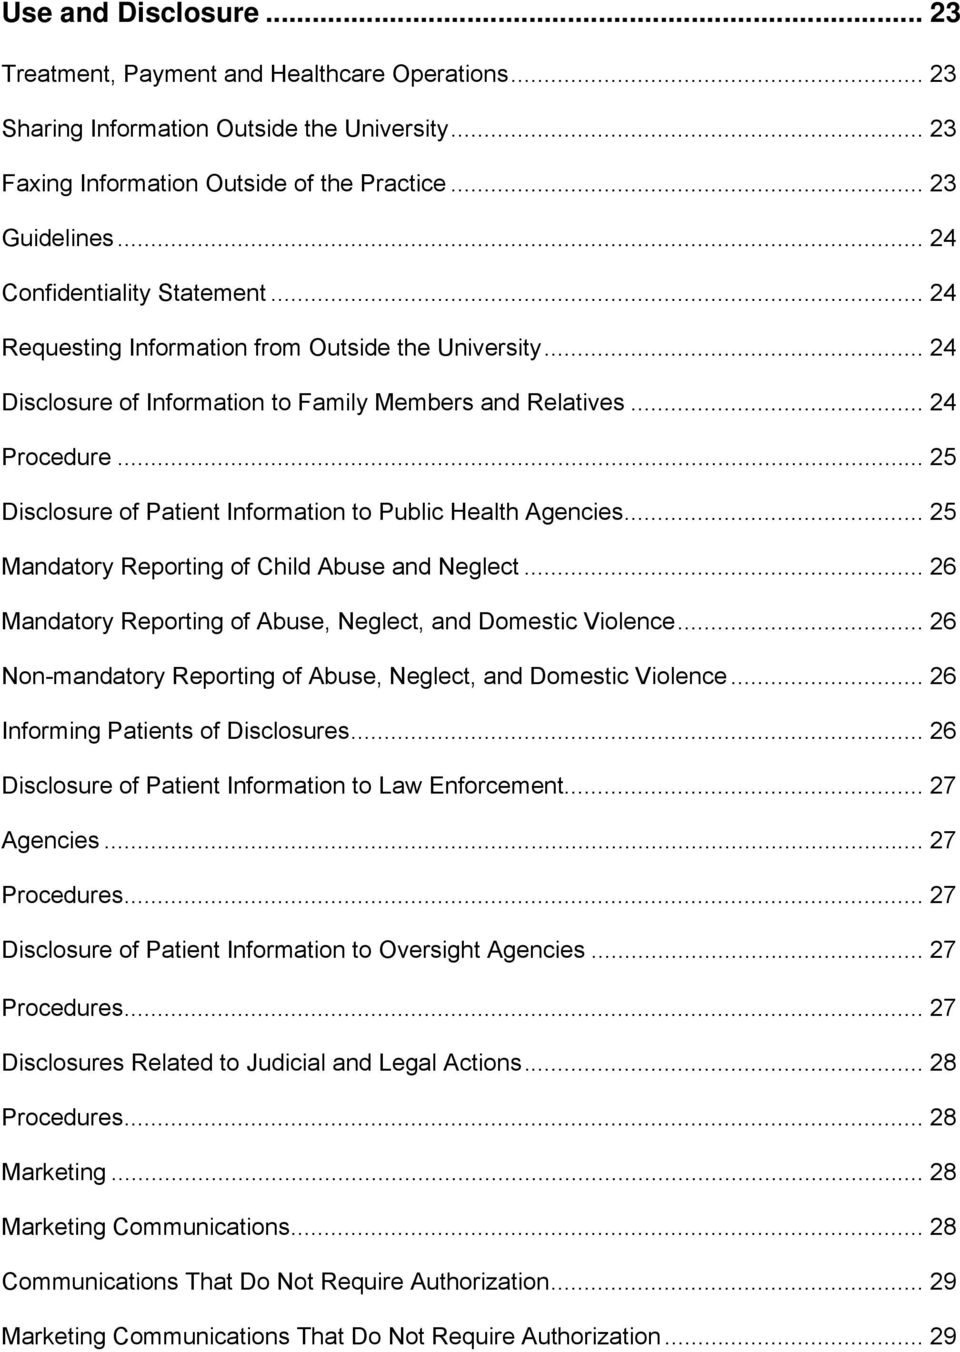 .. 25 Disclosure of Patient Information to Public Health Agencies... 25 Mandatory Reporting of Child Abuse and Neglect... 26 Mandatory Reporting of Abuse, Neglect, and Domestic Violence.